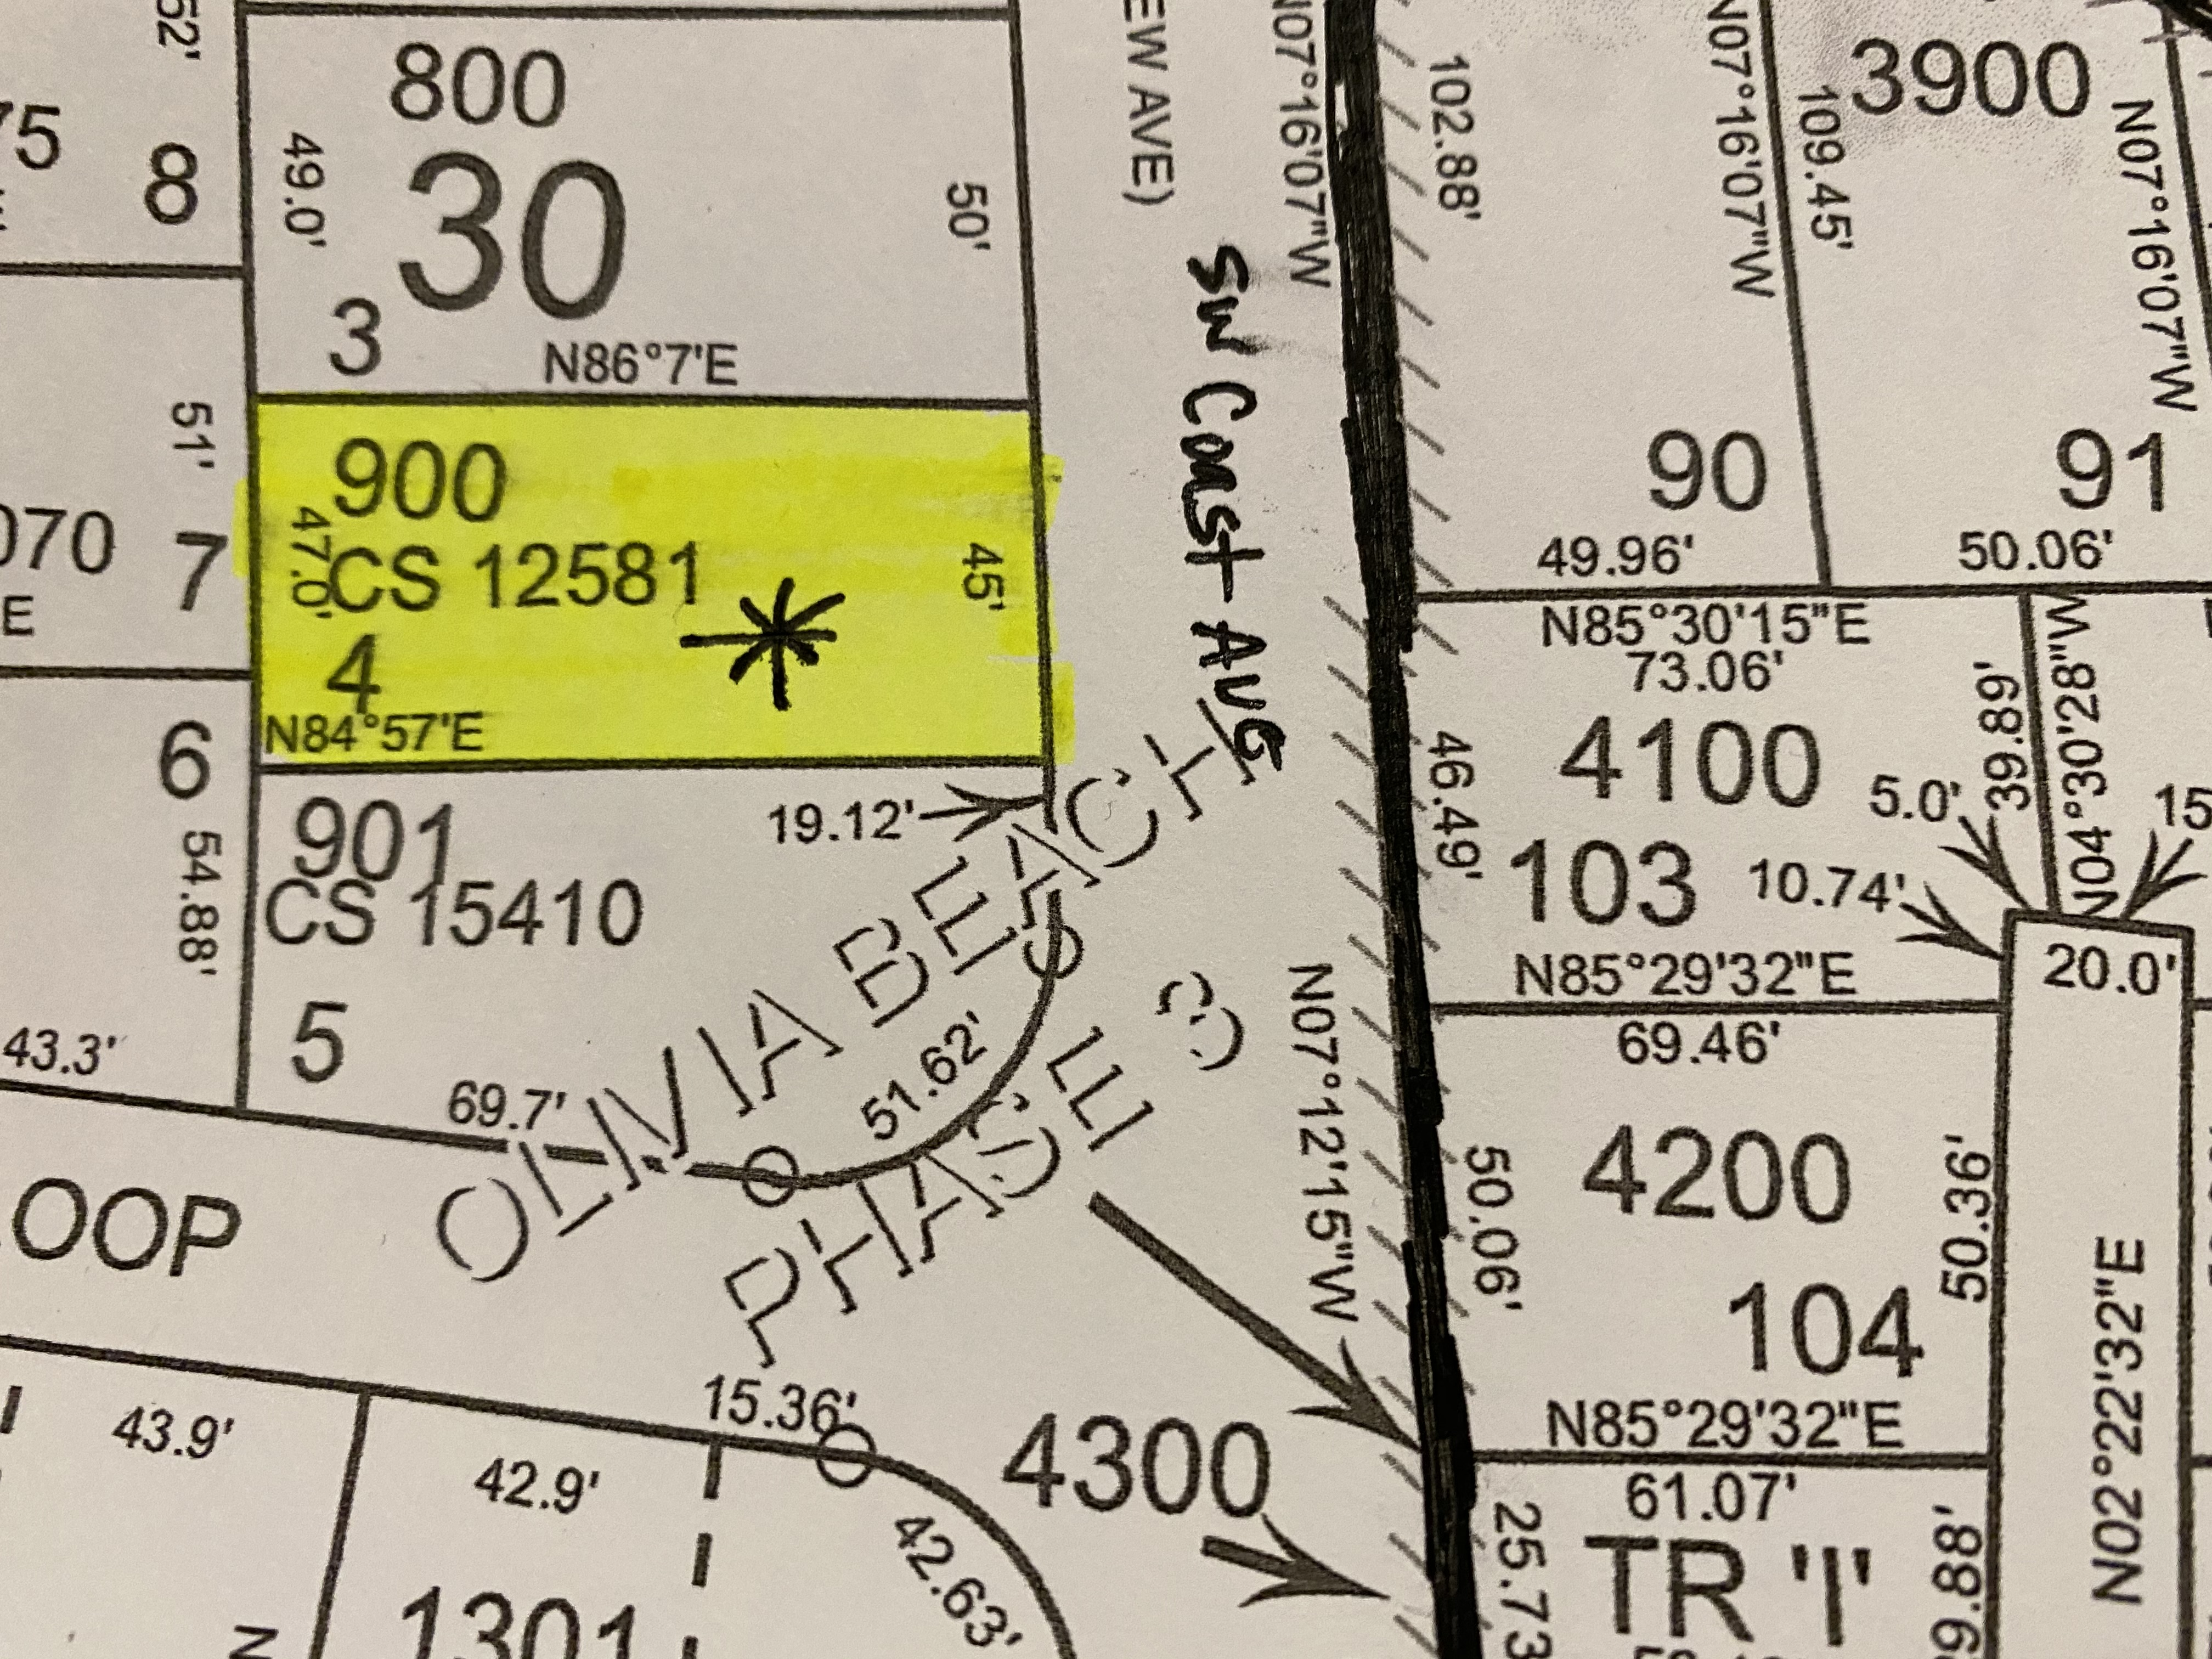 2333 SW Coast Ave  - Lot 900